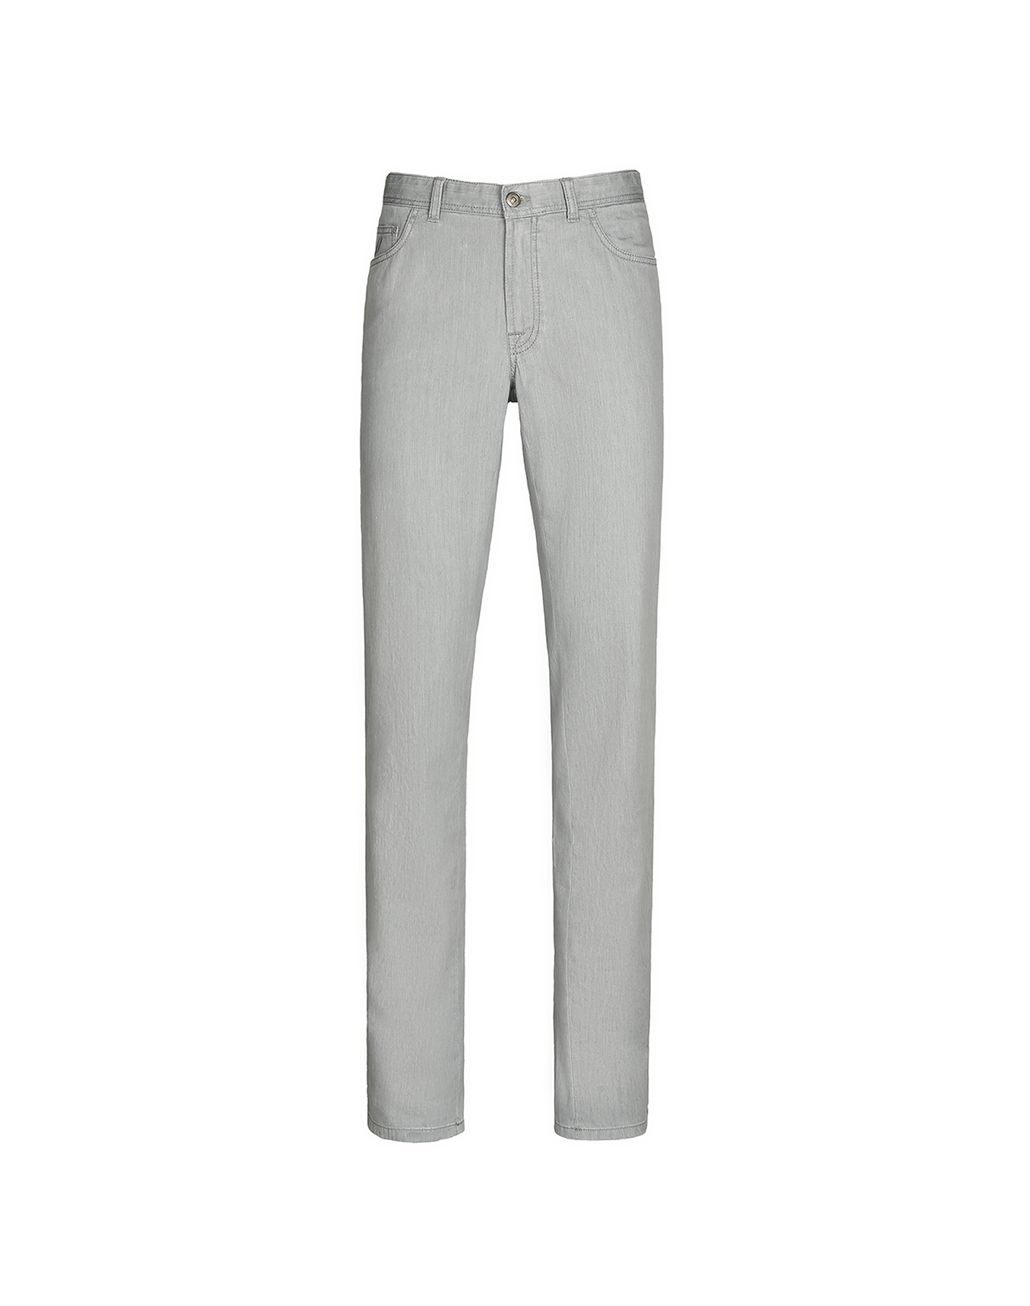 BRIONI Light Grey Comfort Fit Chamonix Jeans  Denim Man f